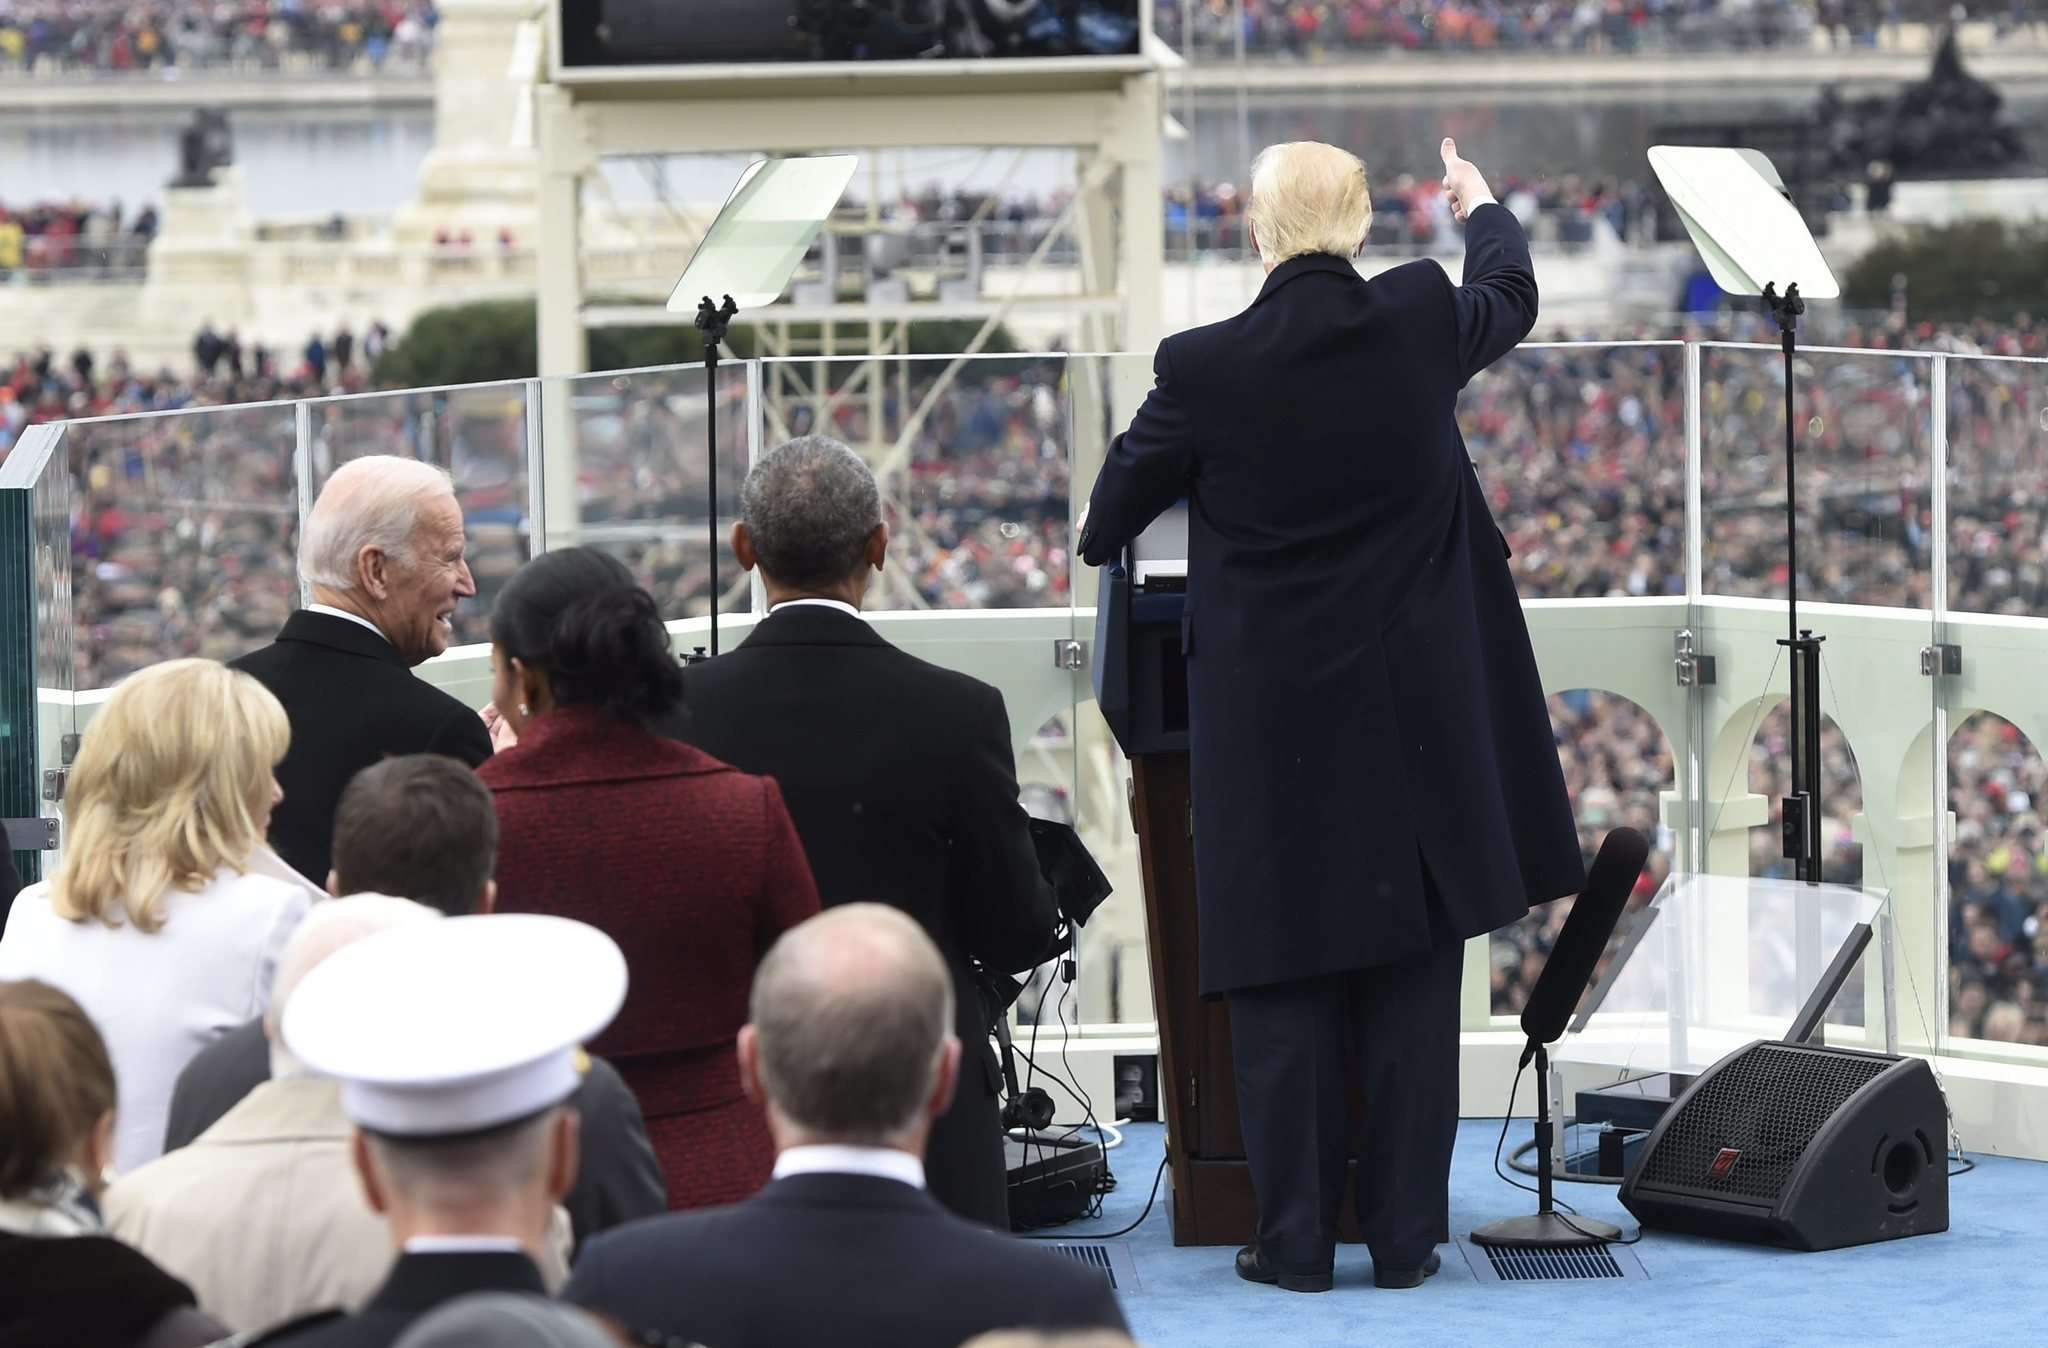 Trump's inaugural address does little to allay these readers' fears